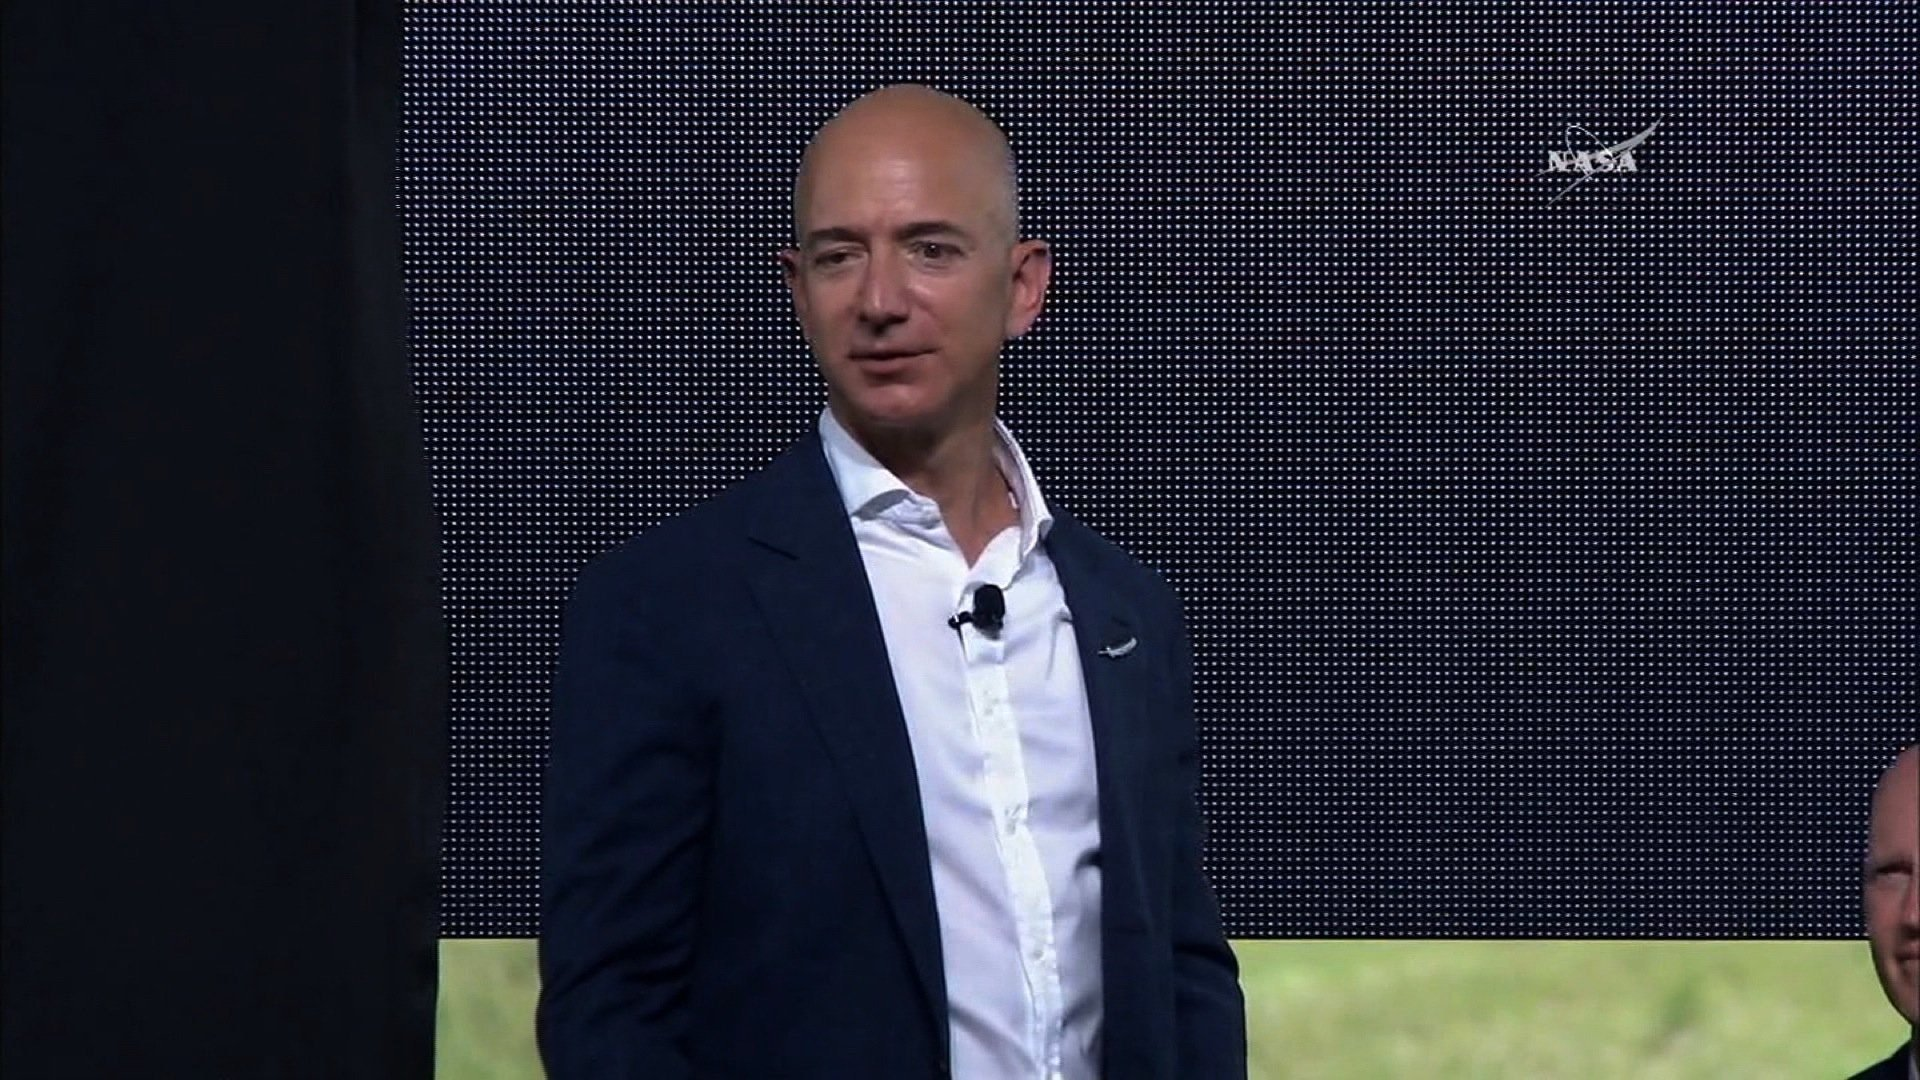 Bezos on Thiel: 'Contrarians are usually wrong'